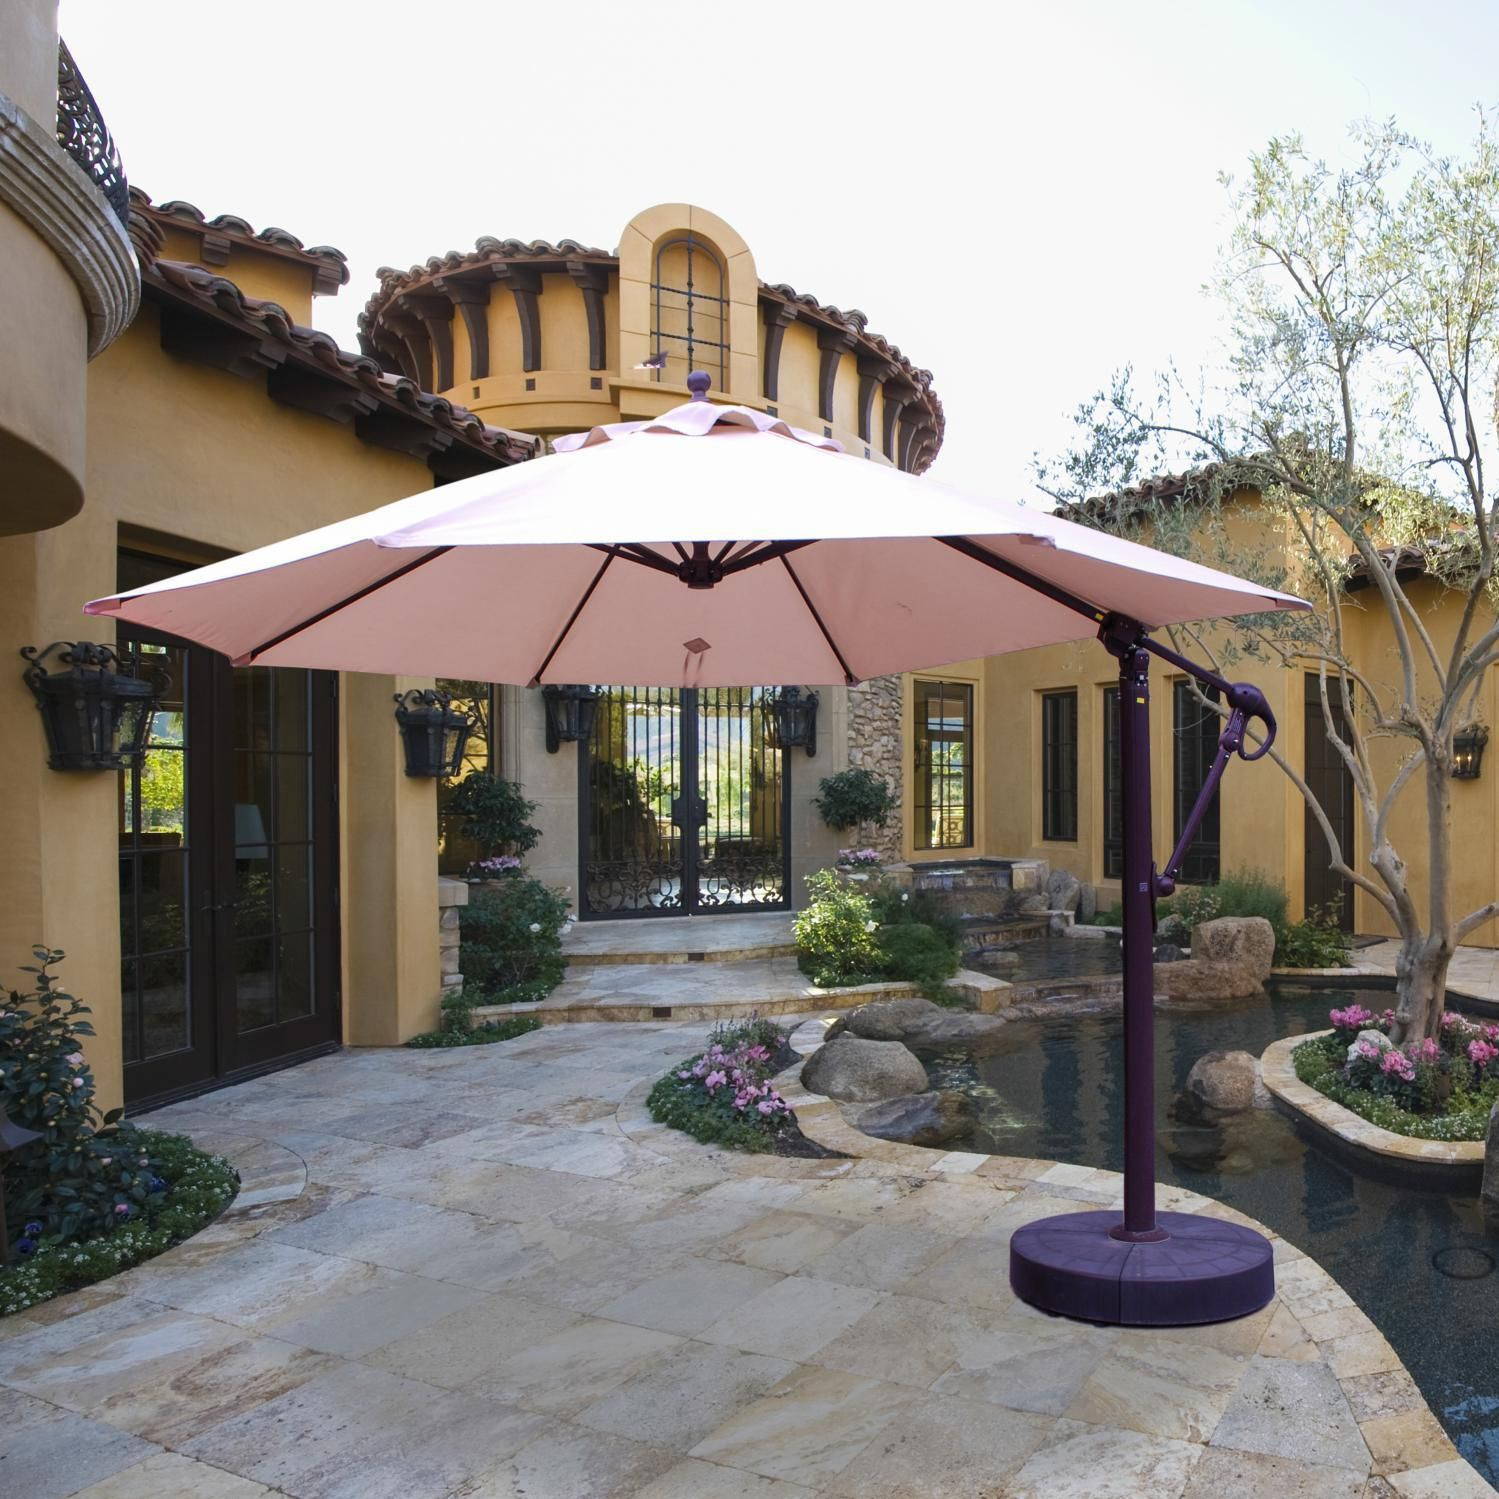 The Galtech 11ft cantilever patio umbrella features an easy lift